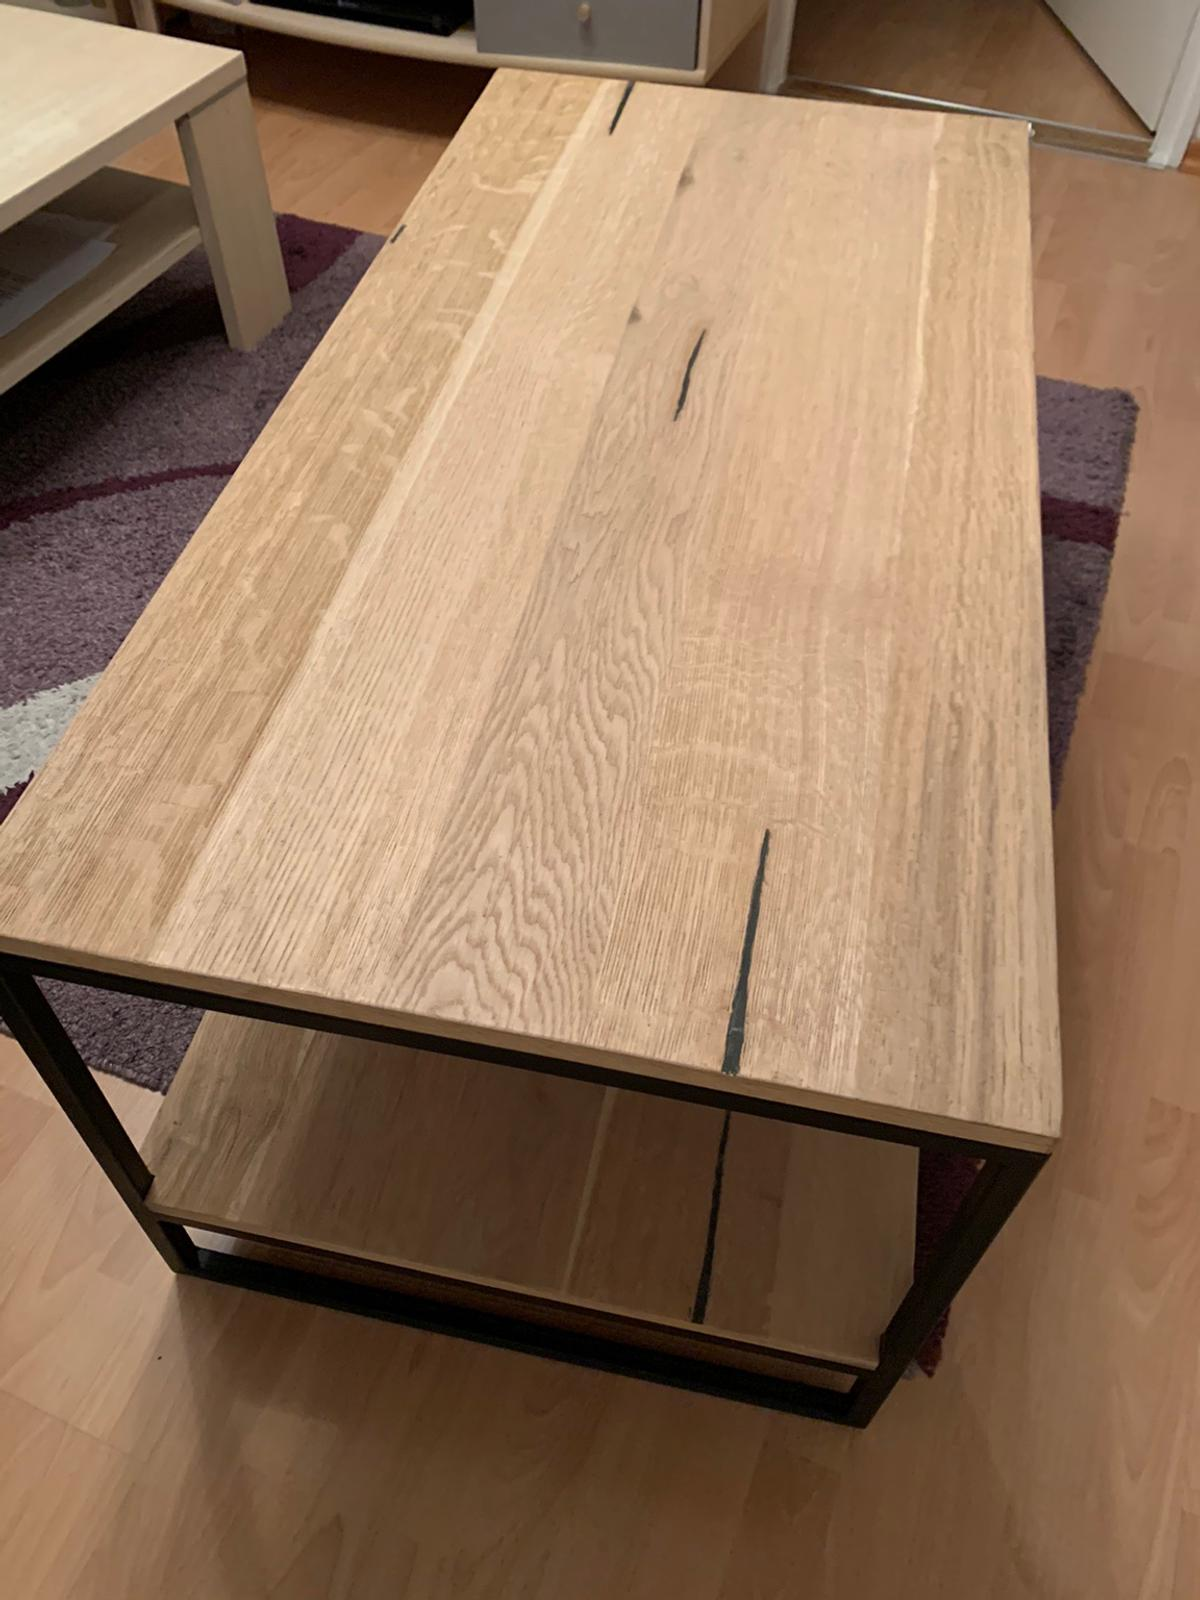 Bauholz Couchtisch Couchtisch - Holz/stahl In 80339 München For €230.00 For Sale | Shpock